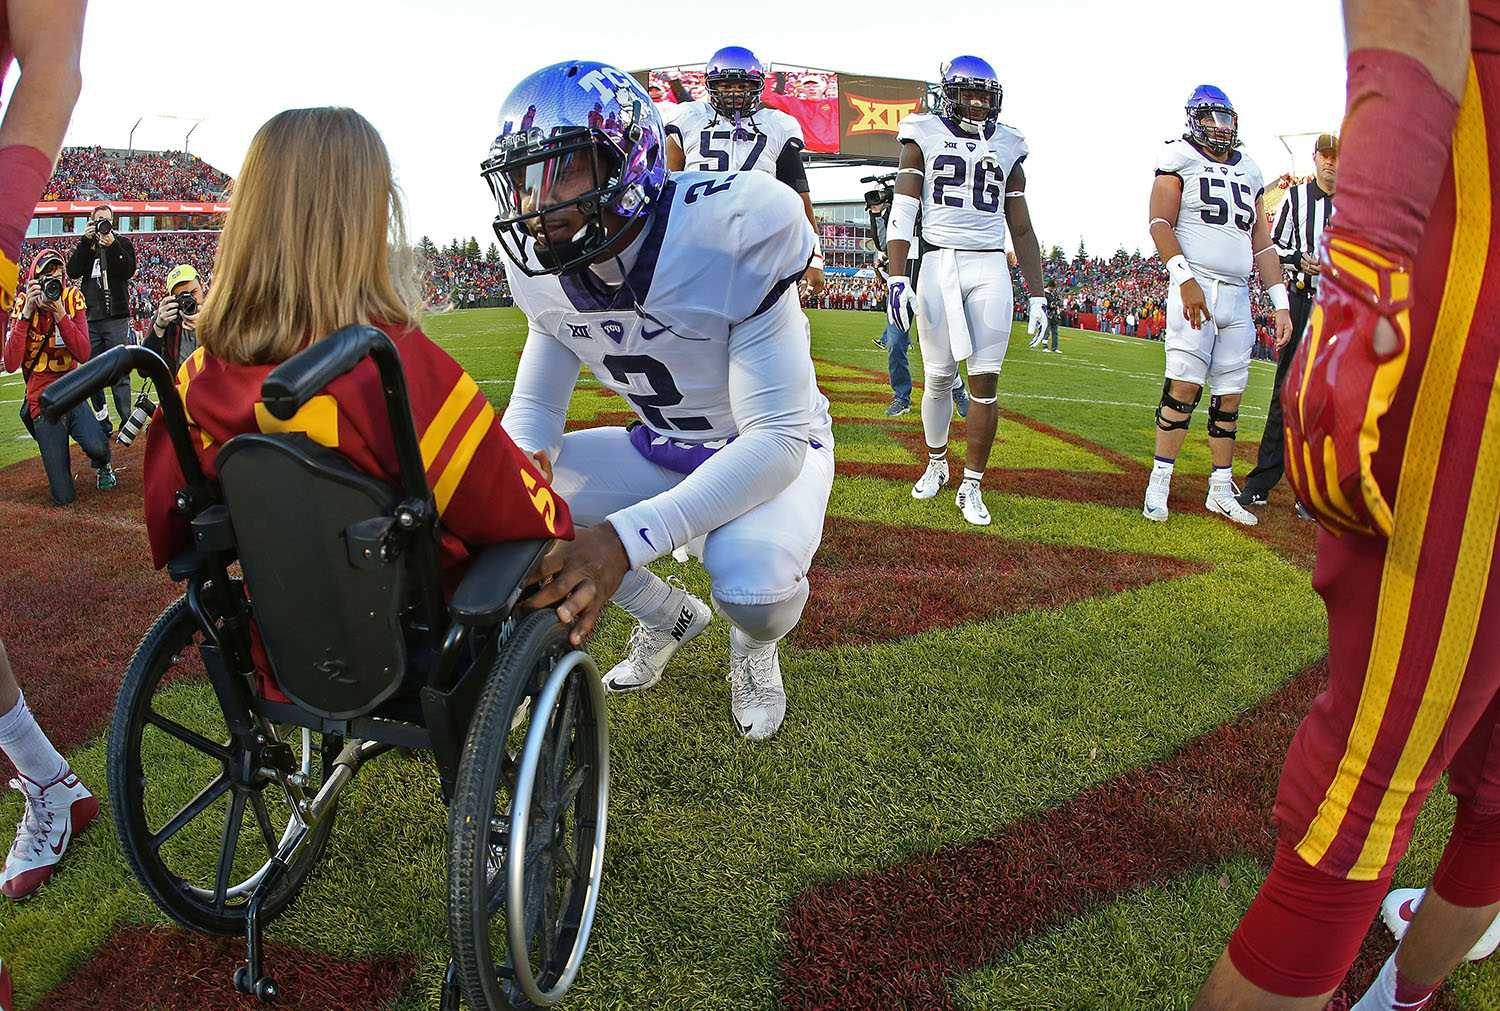 At the coin flip, TCU Horned Frogs quarterback Trevone Boykin (2) knelt to ask Abby Faber, an Iowa State honorary captain at the flip as a guest, her name. The TCU Horned Frogs play the Iowa State Cyclones in Ames, Iowa, Saturday, October 17, 2015.